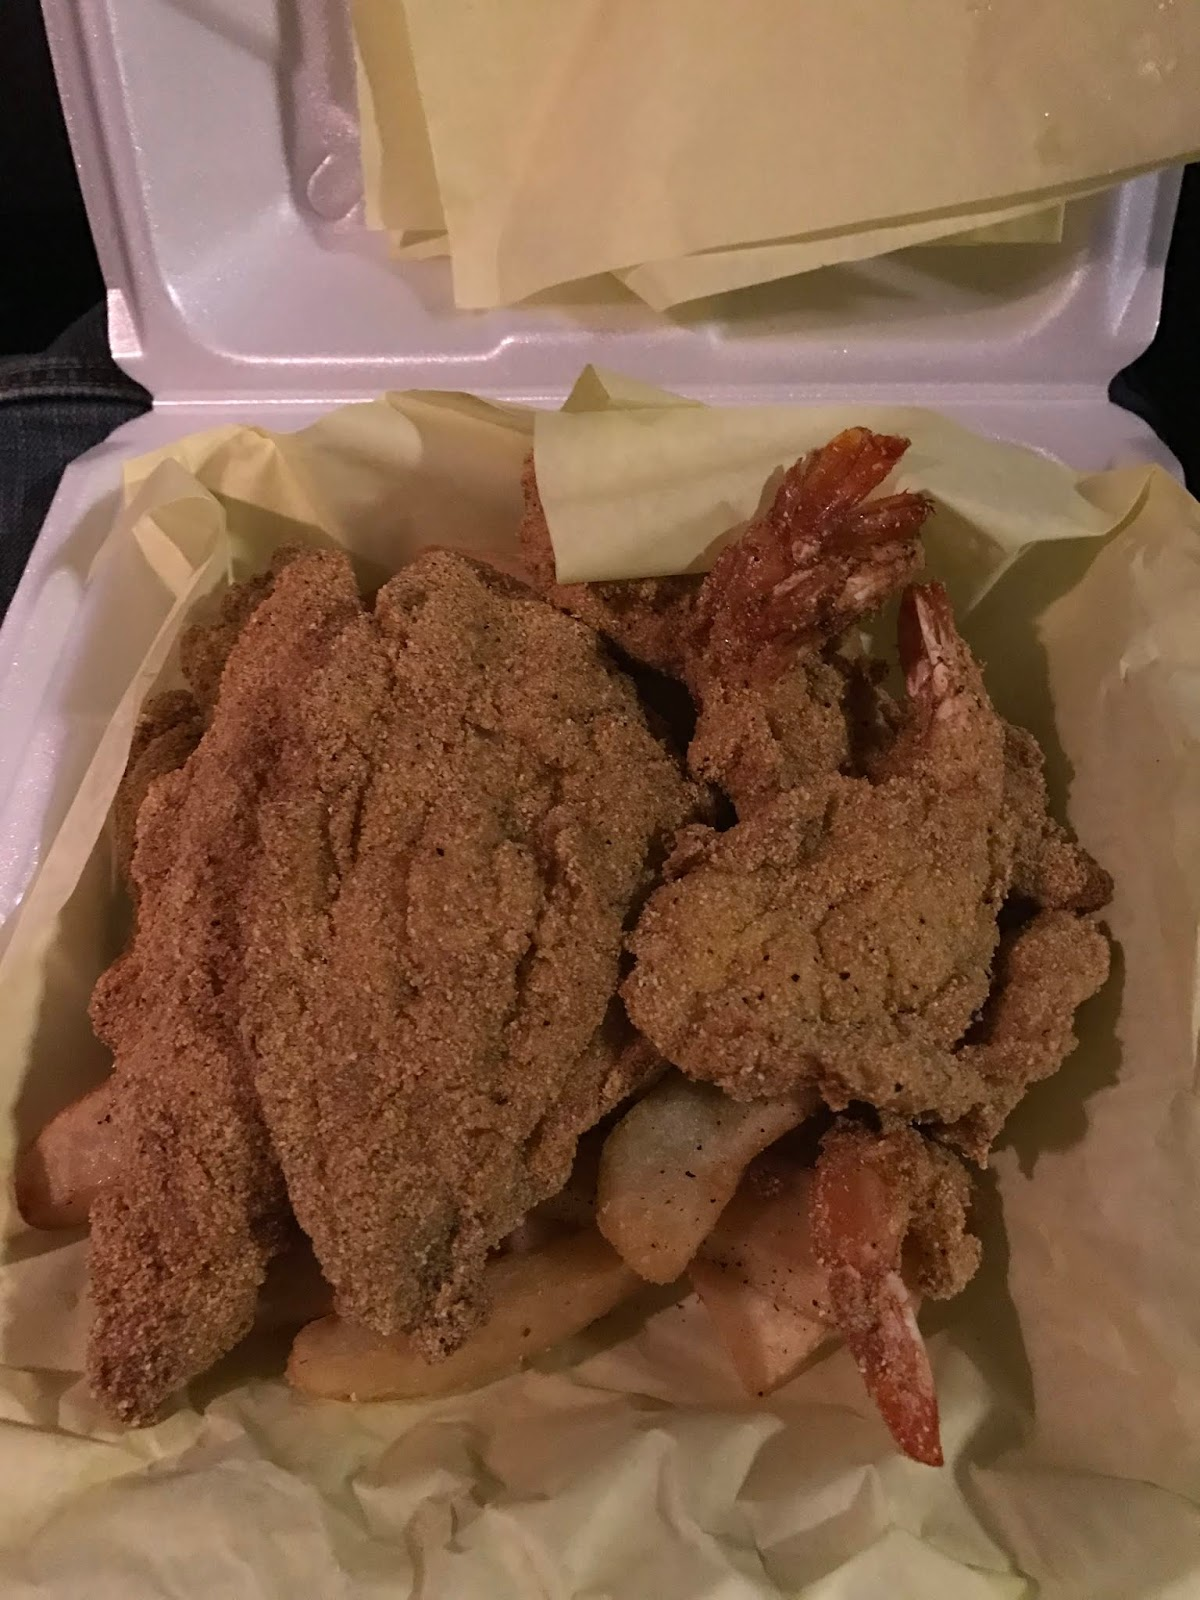 Image: Fried Fish and shrimp. Example of eating healthy and working out